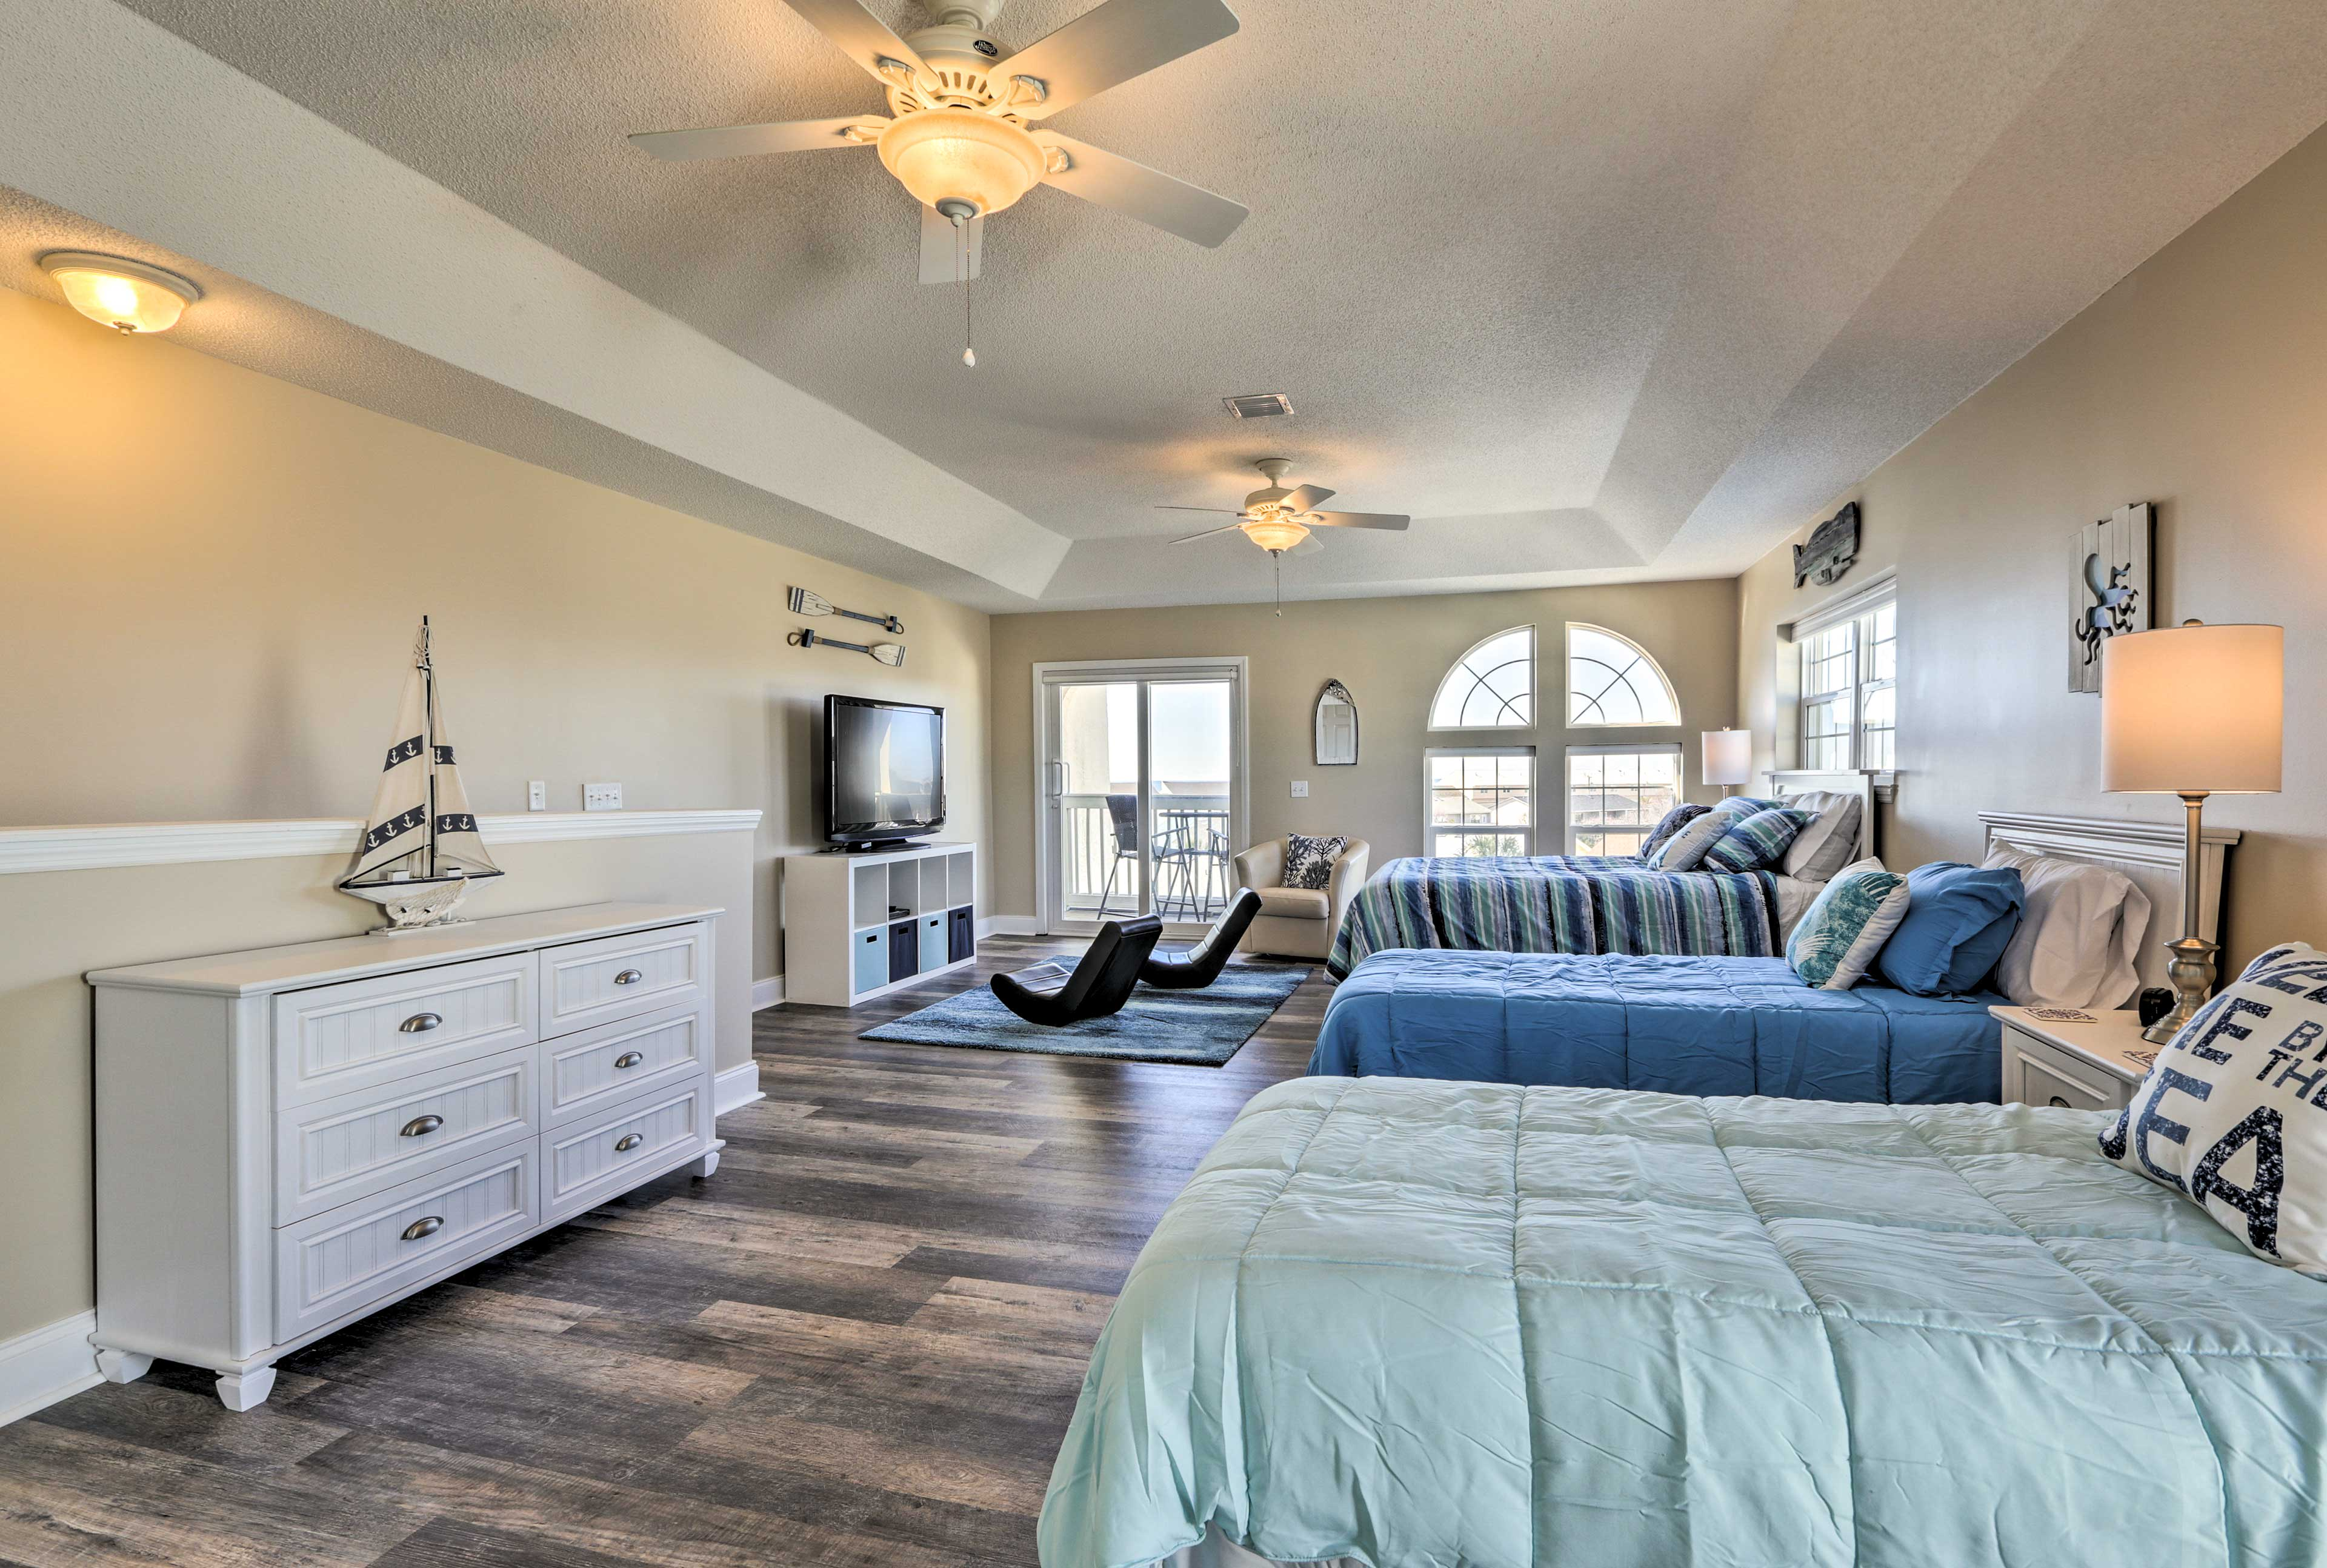 With with 3 bedrooms and 3 bathrooms, this home is perfect for large groups.